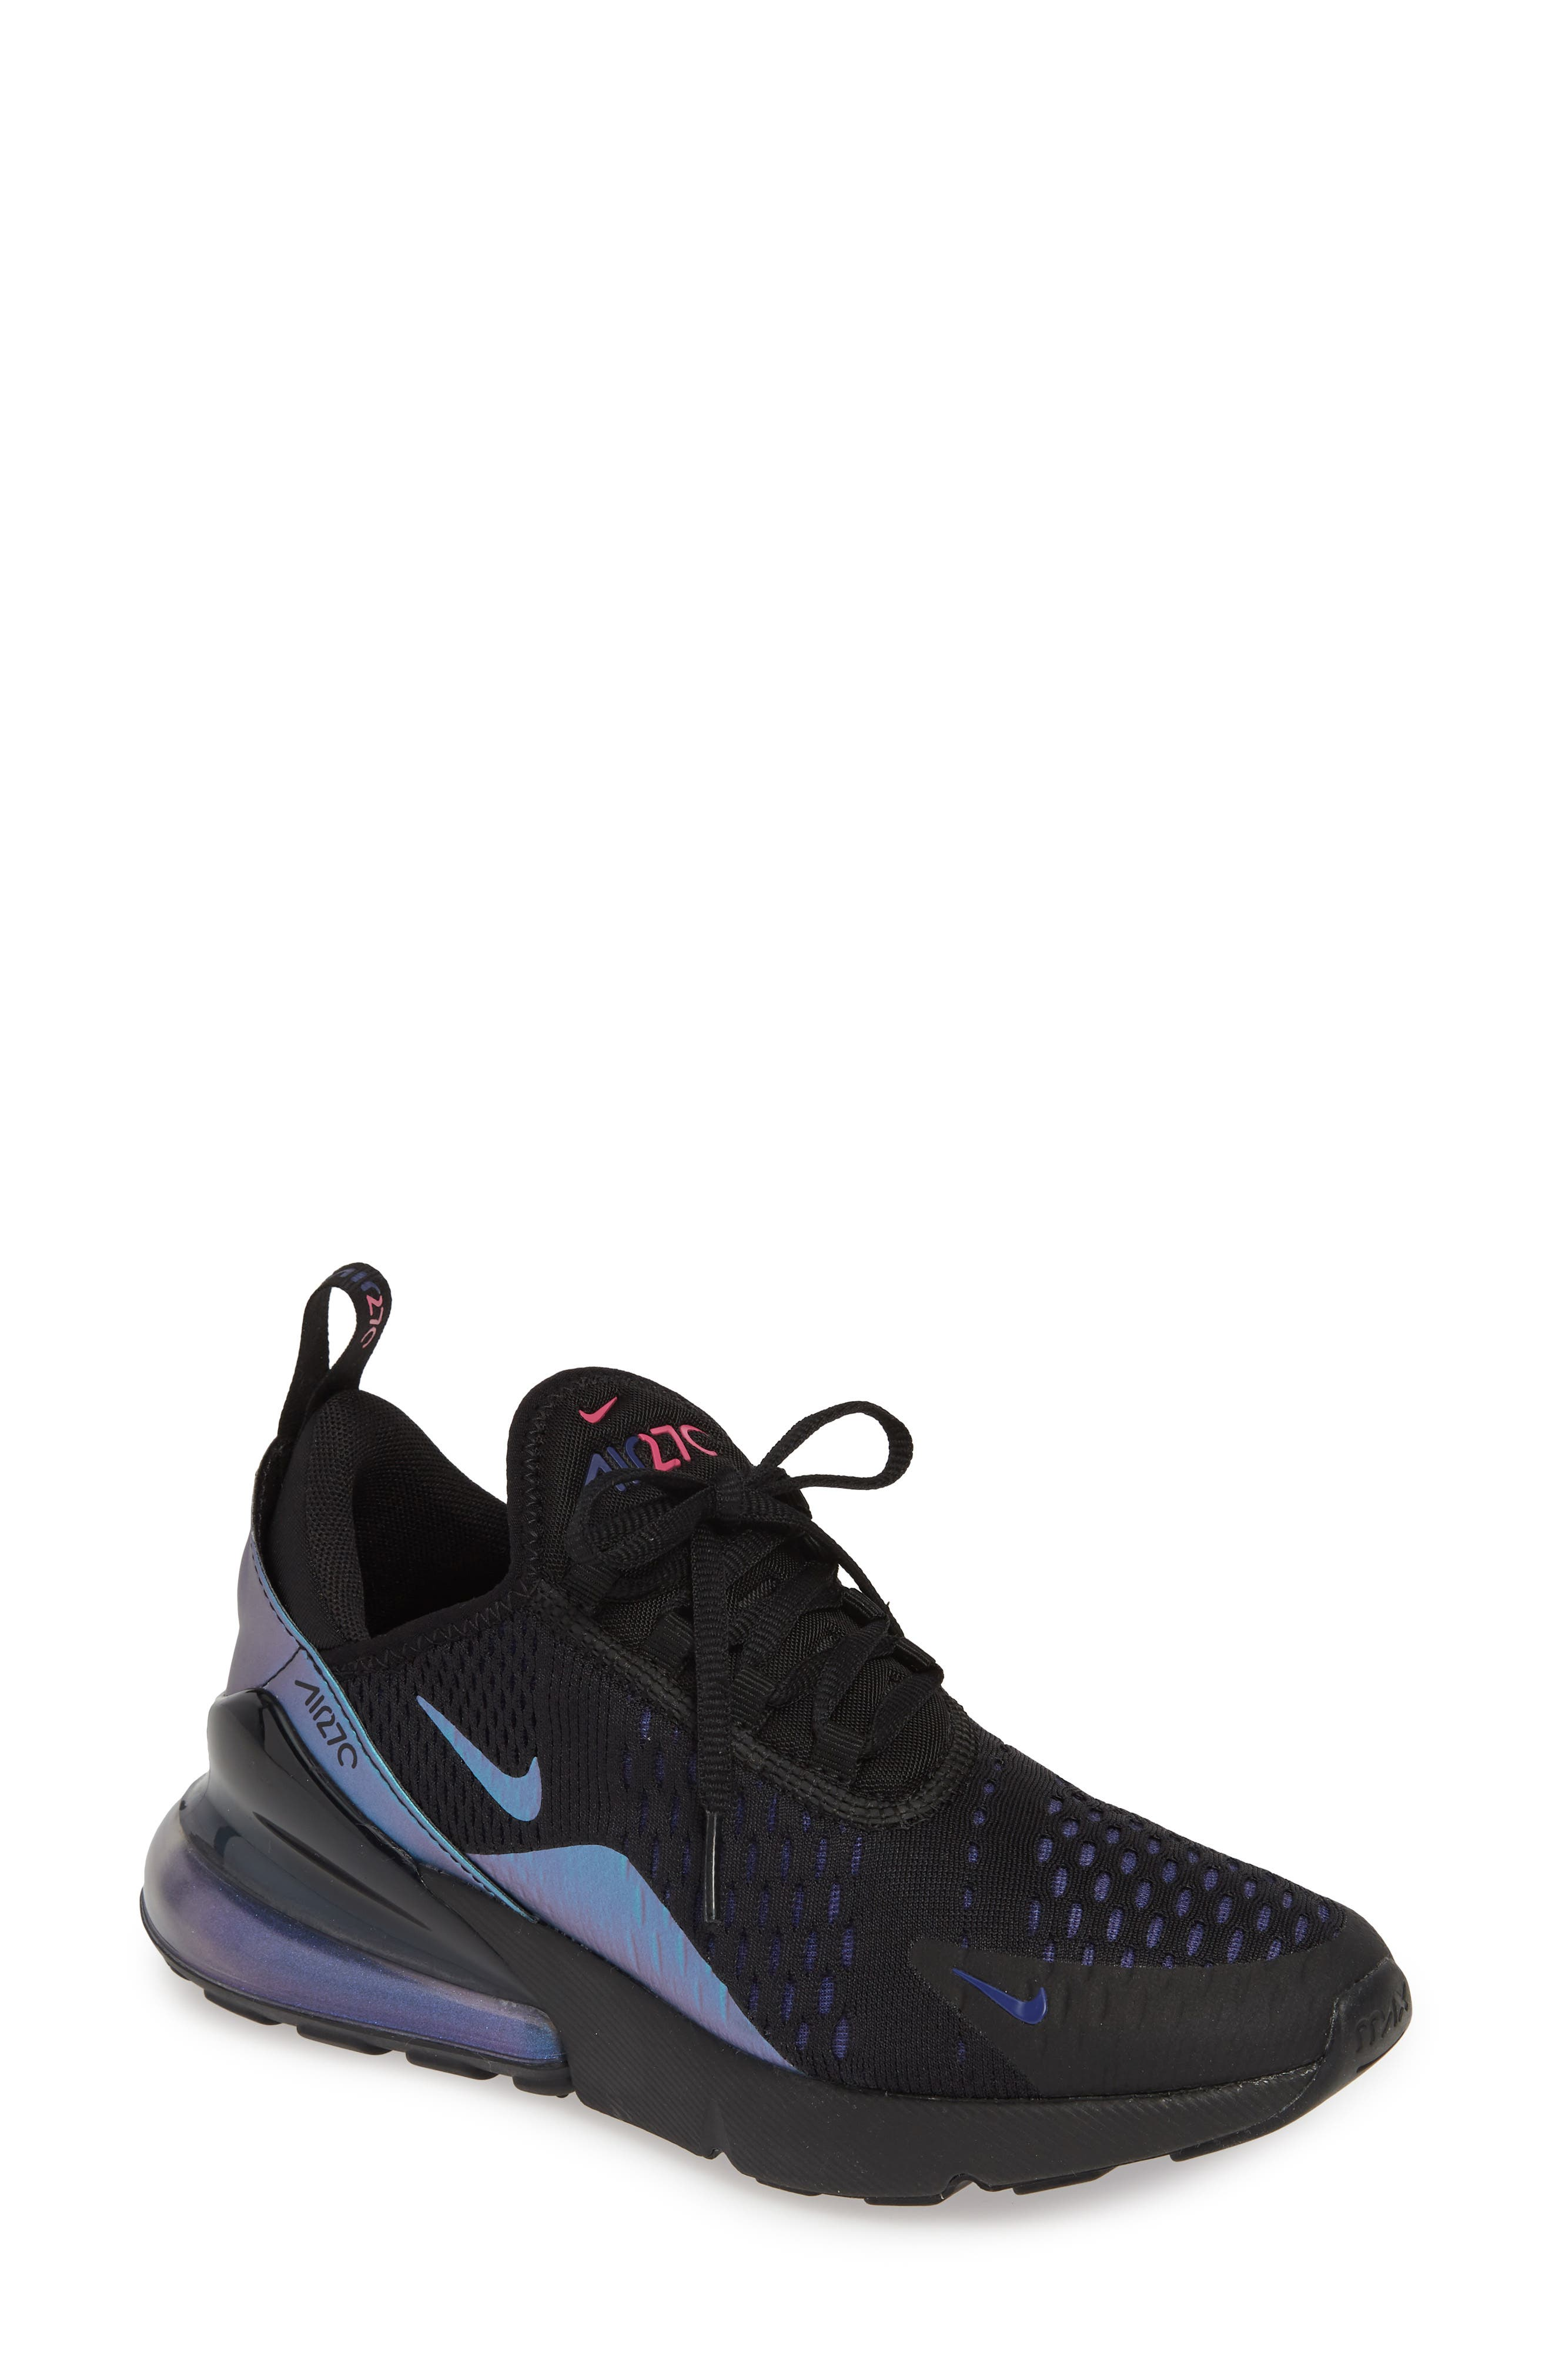 meet 4a540 a5719 For Women Nike Air Max Shoes   Nordstrom